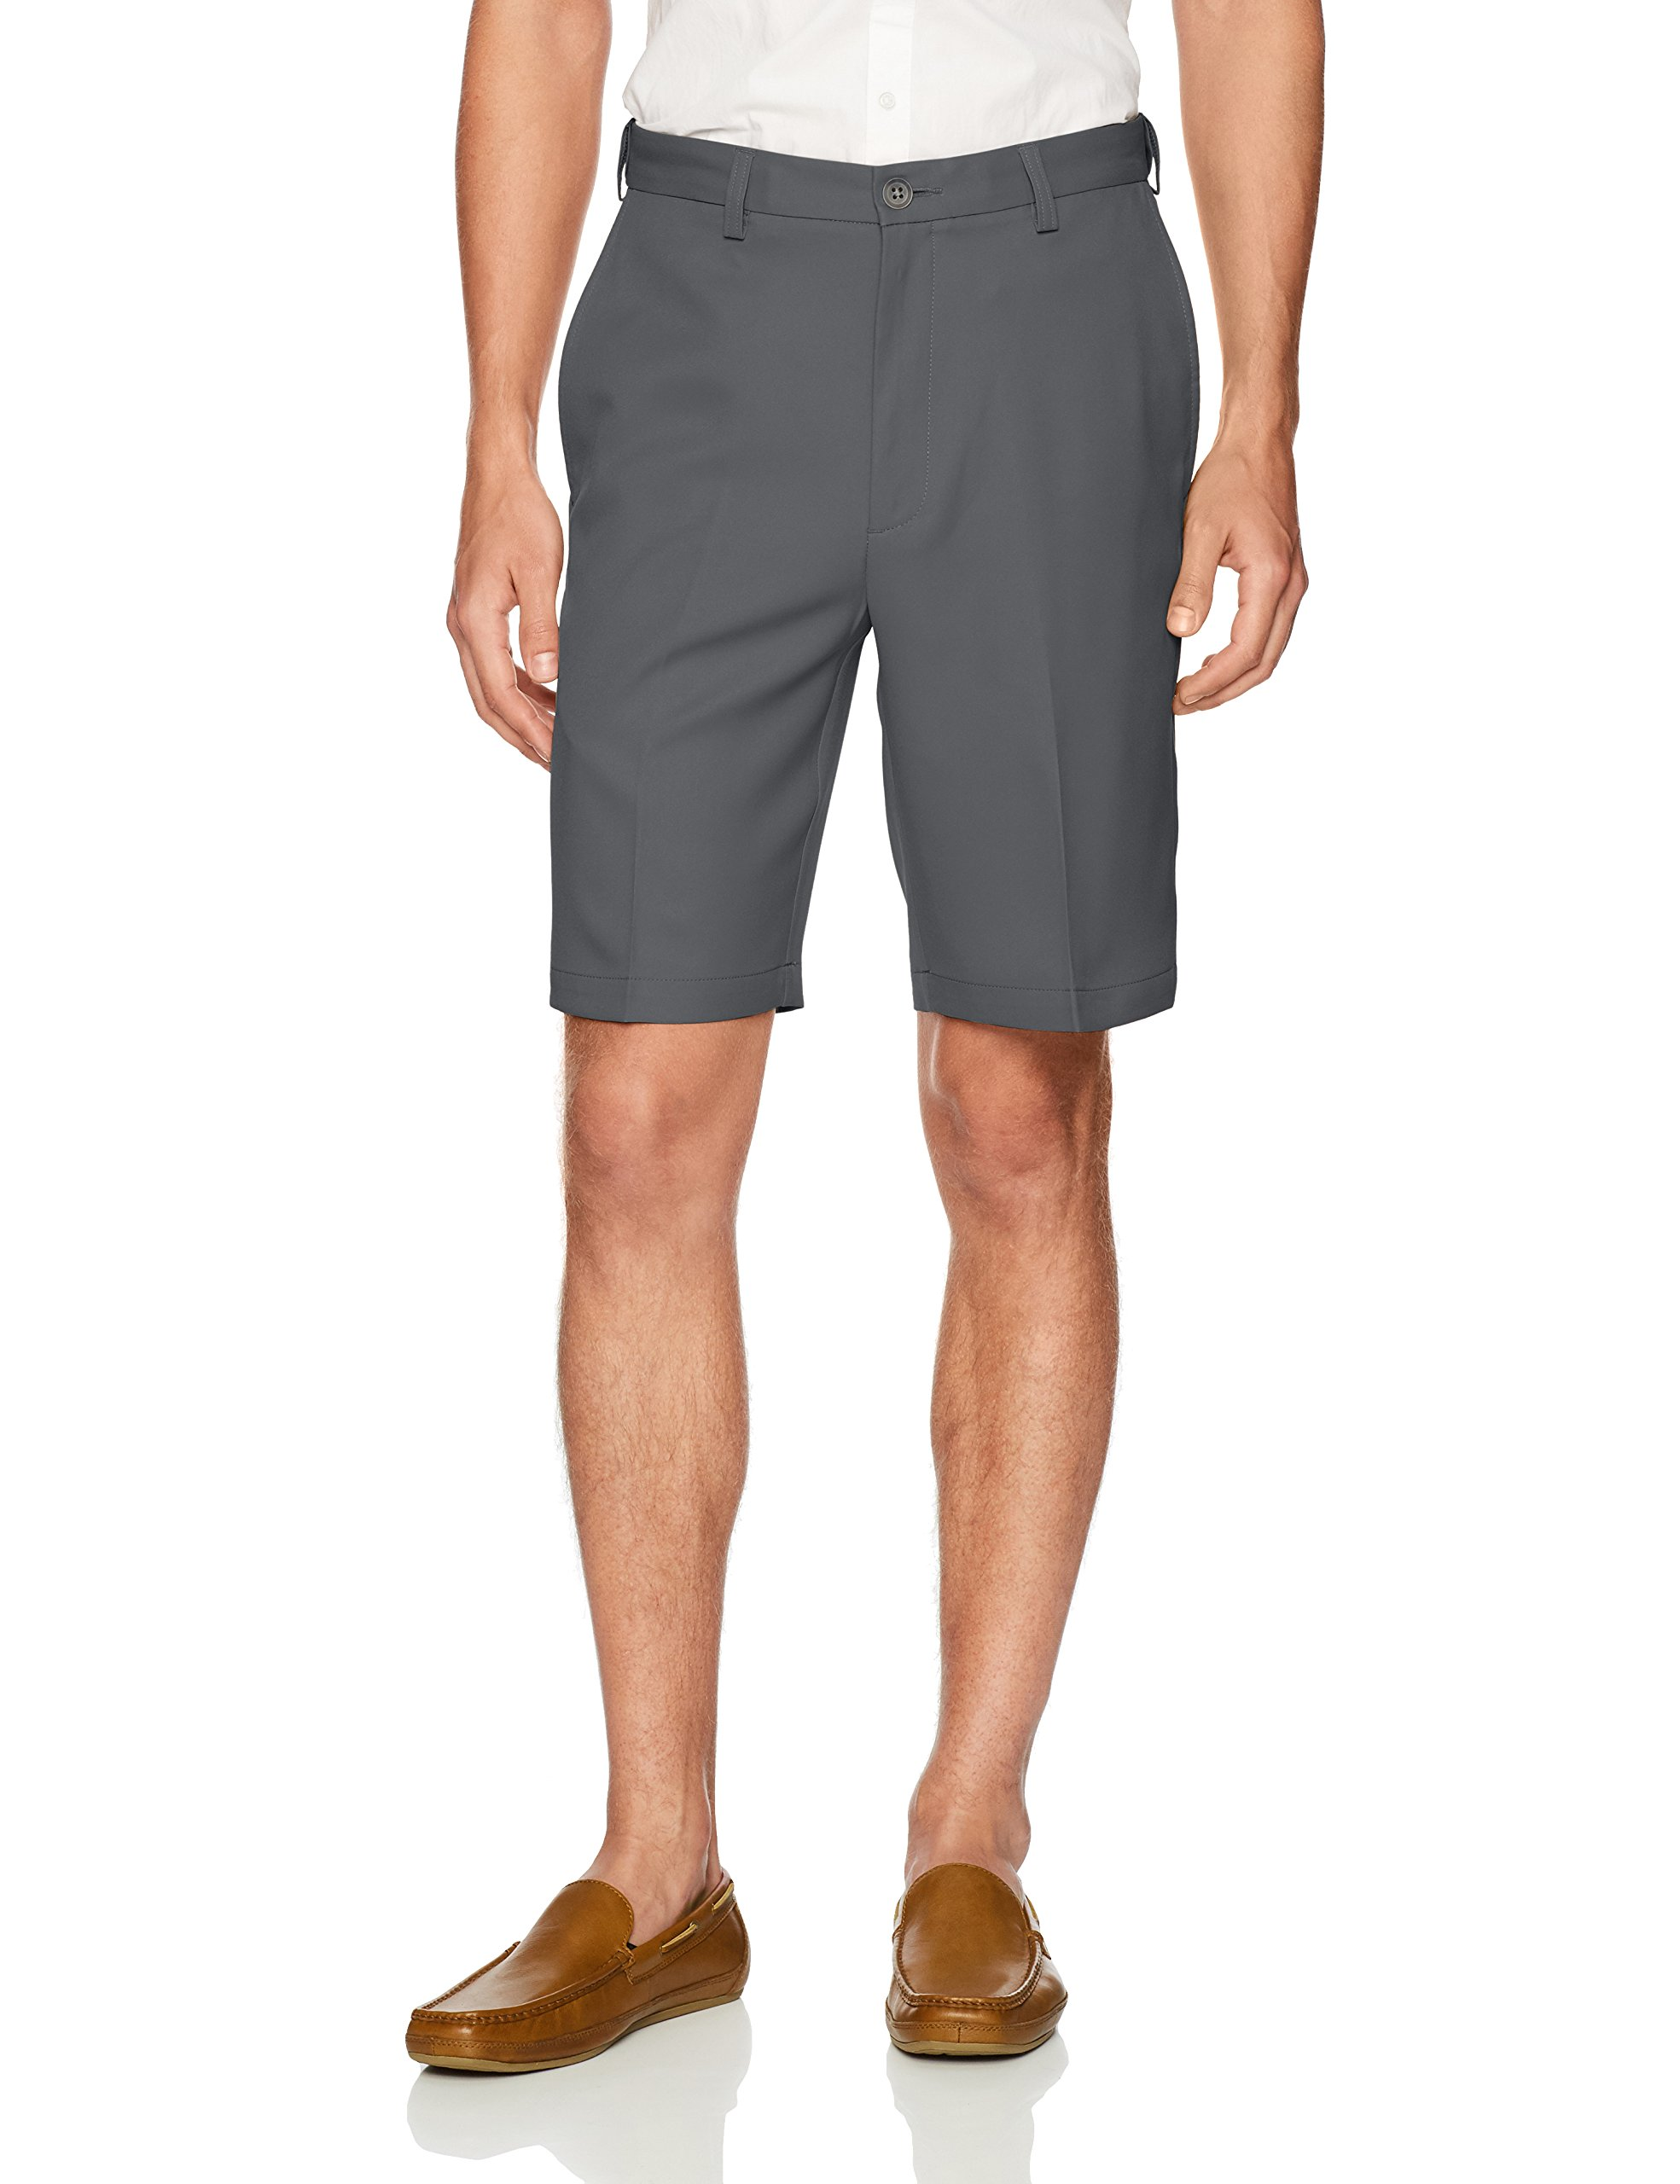 Haggar Men's Cool 18 Pro Straight Fit Stretch Solid Flat Front Short, Grey, 38 by Haggar